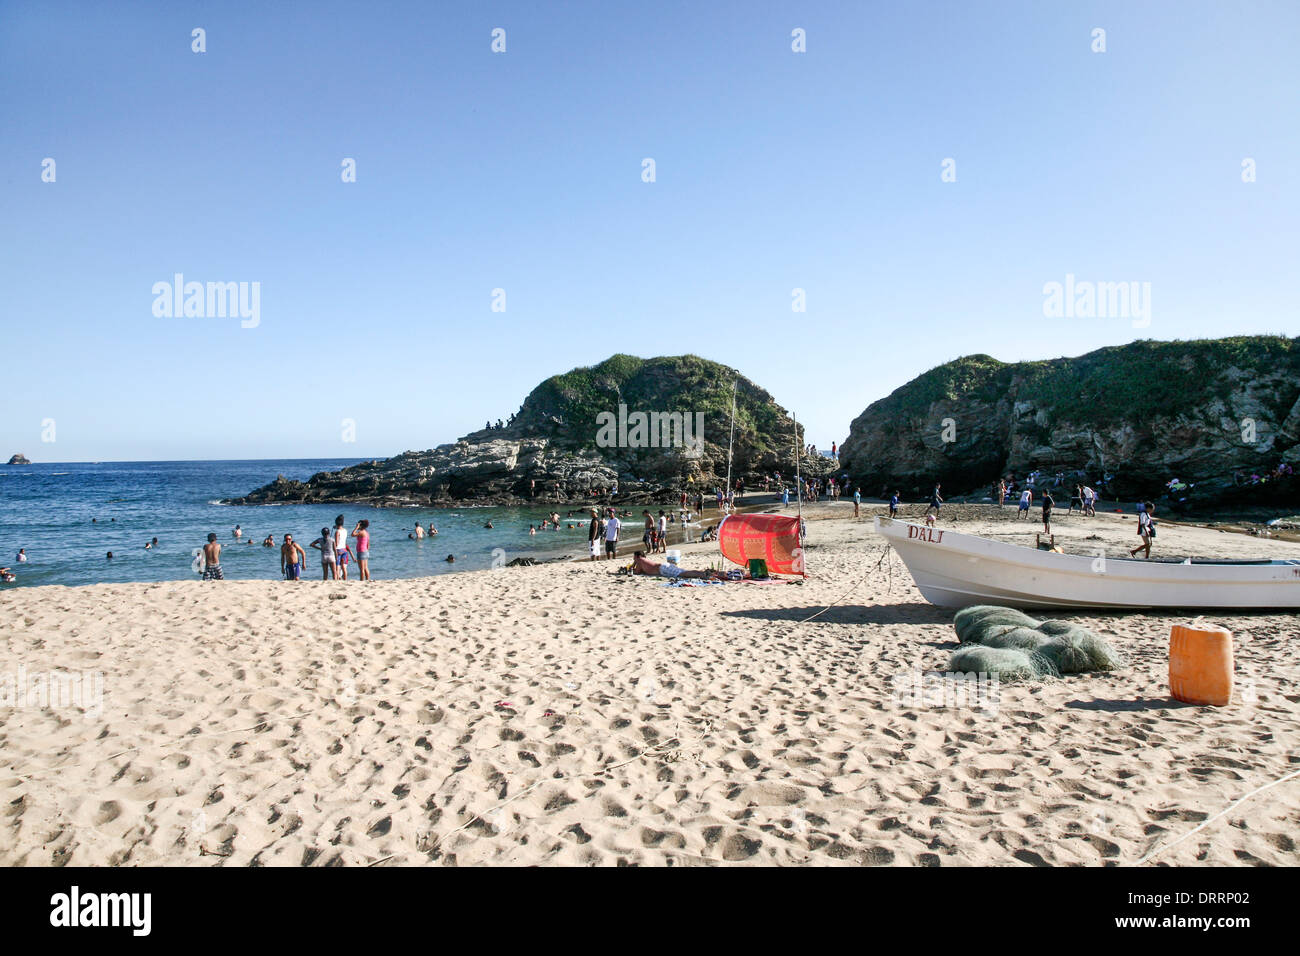 peaceful beach scene on hot Christmas day as Mexican families from neighboring towns enjoy cooling off in sea at San Agustinillo - Stock Image